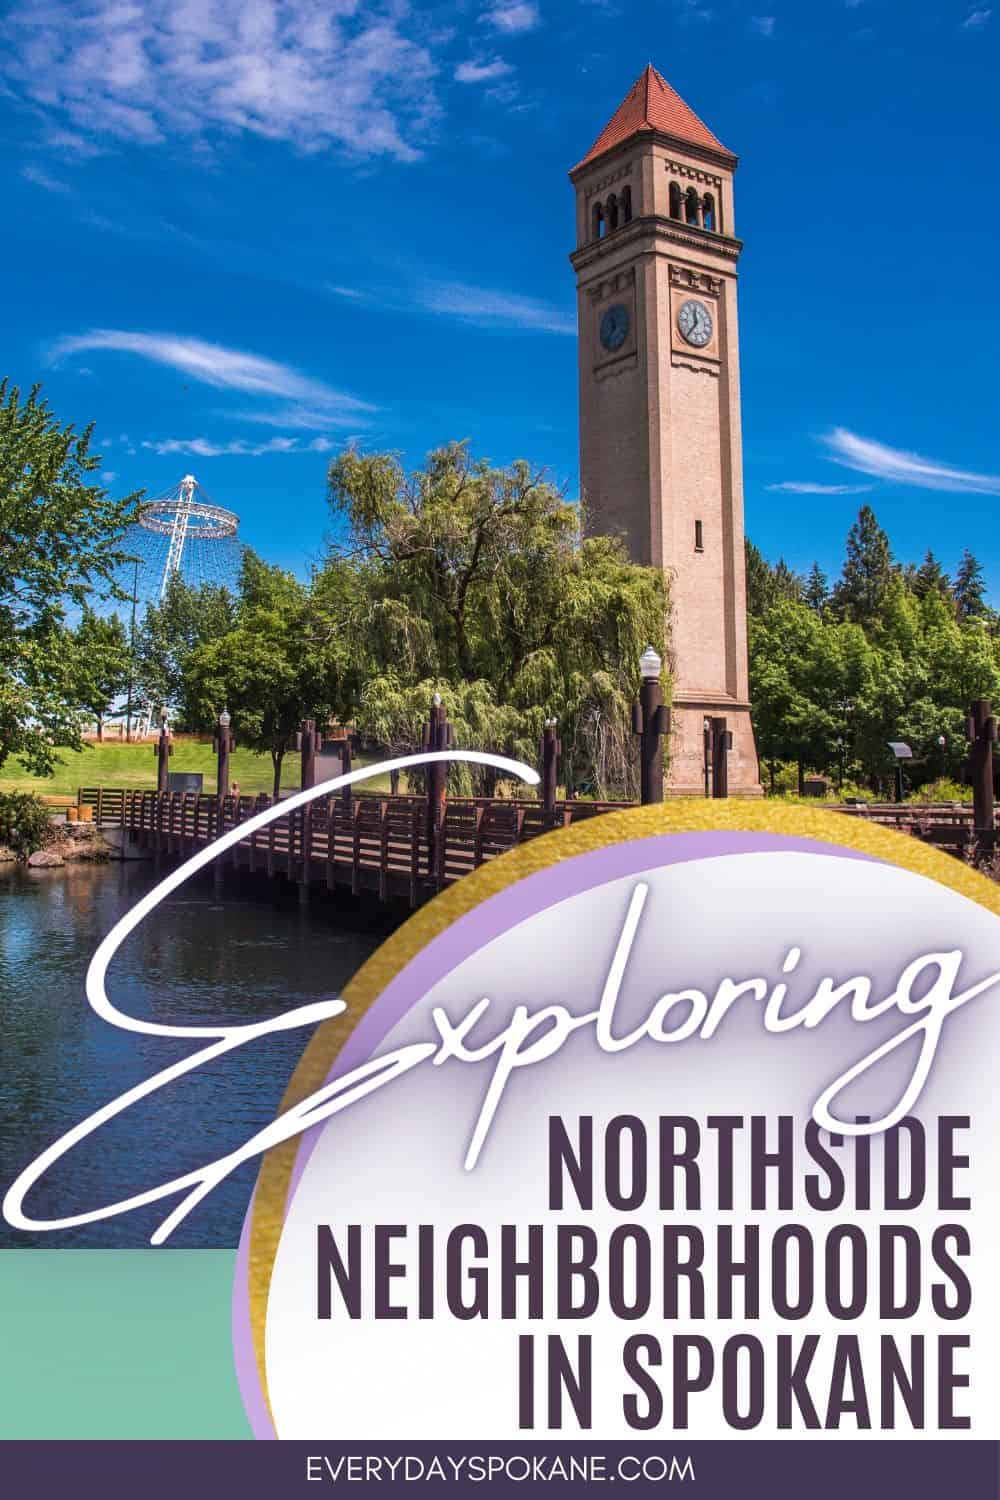 northside spokane neighborhoods